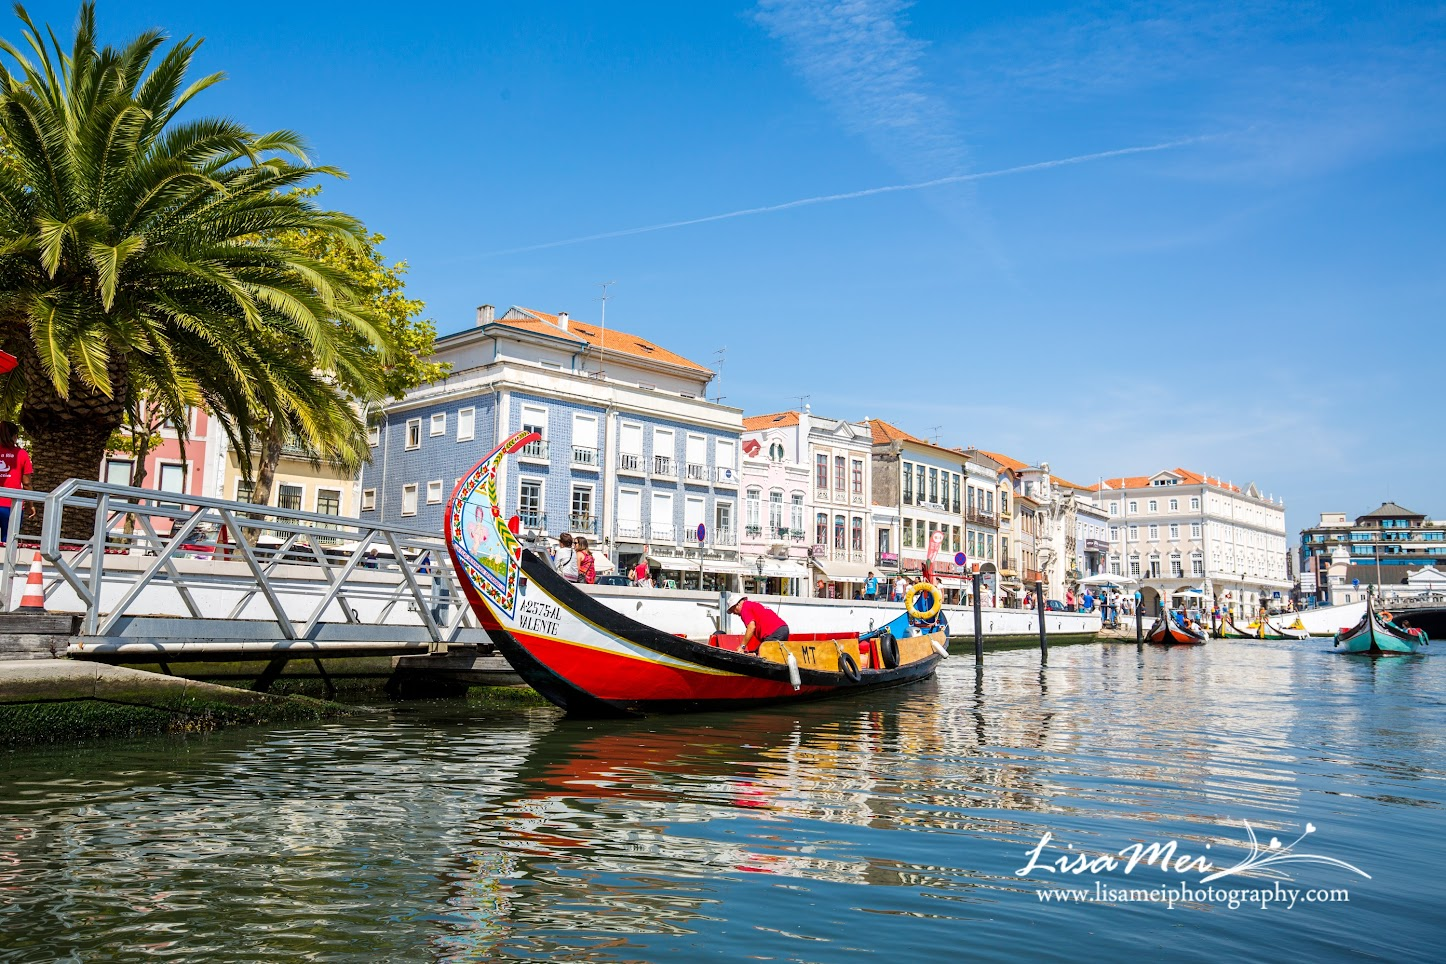 Aveiro - not only known as the Venice of Portugal, it's almost known for its Art Nouveau architectures